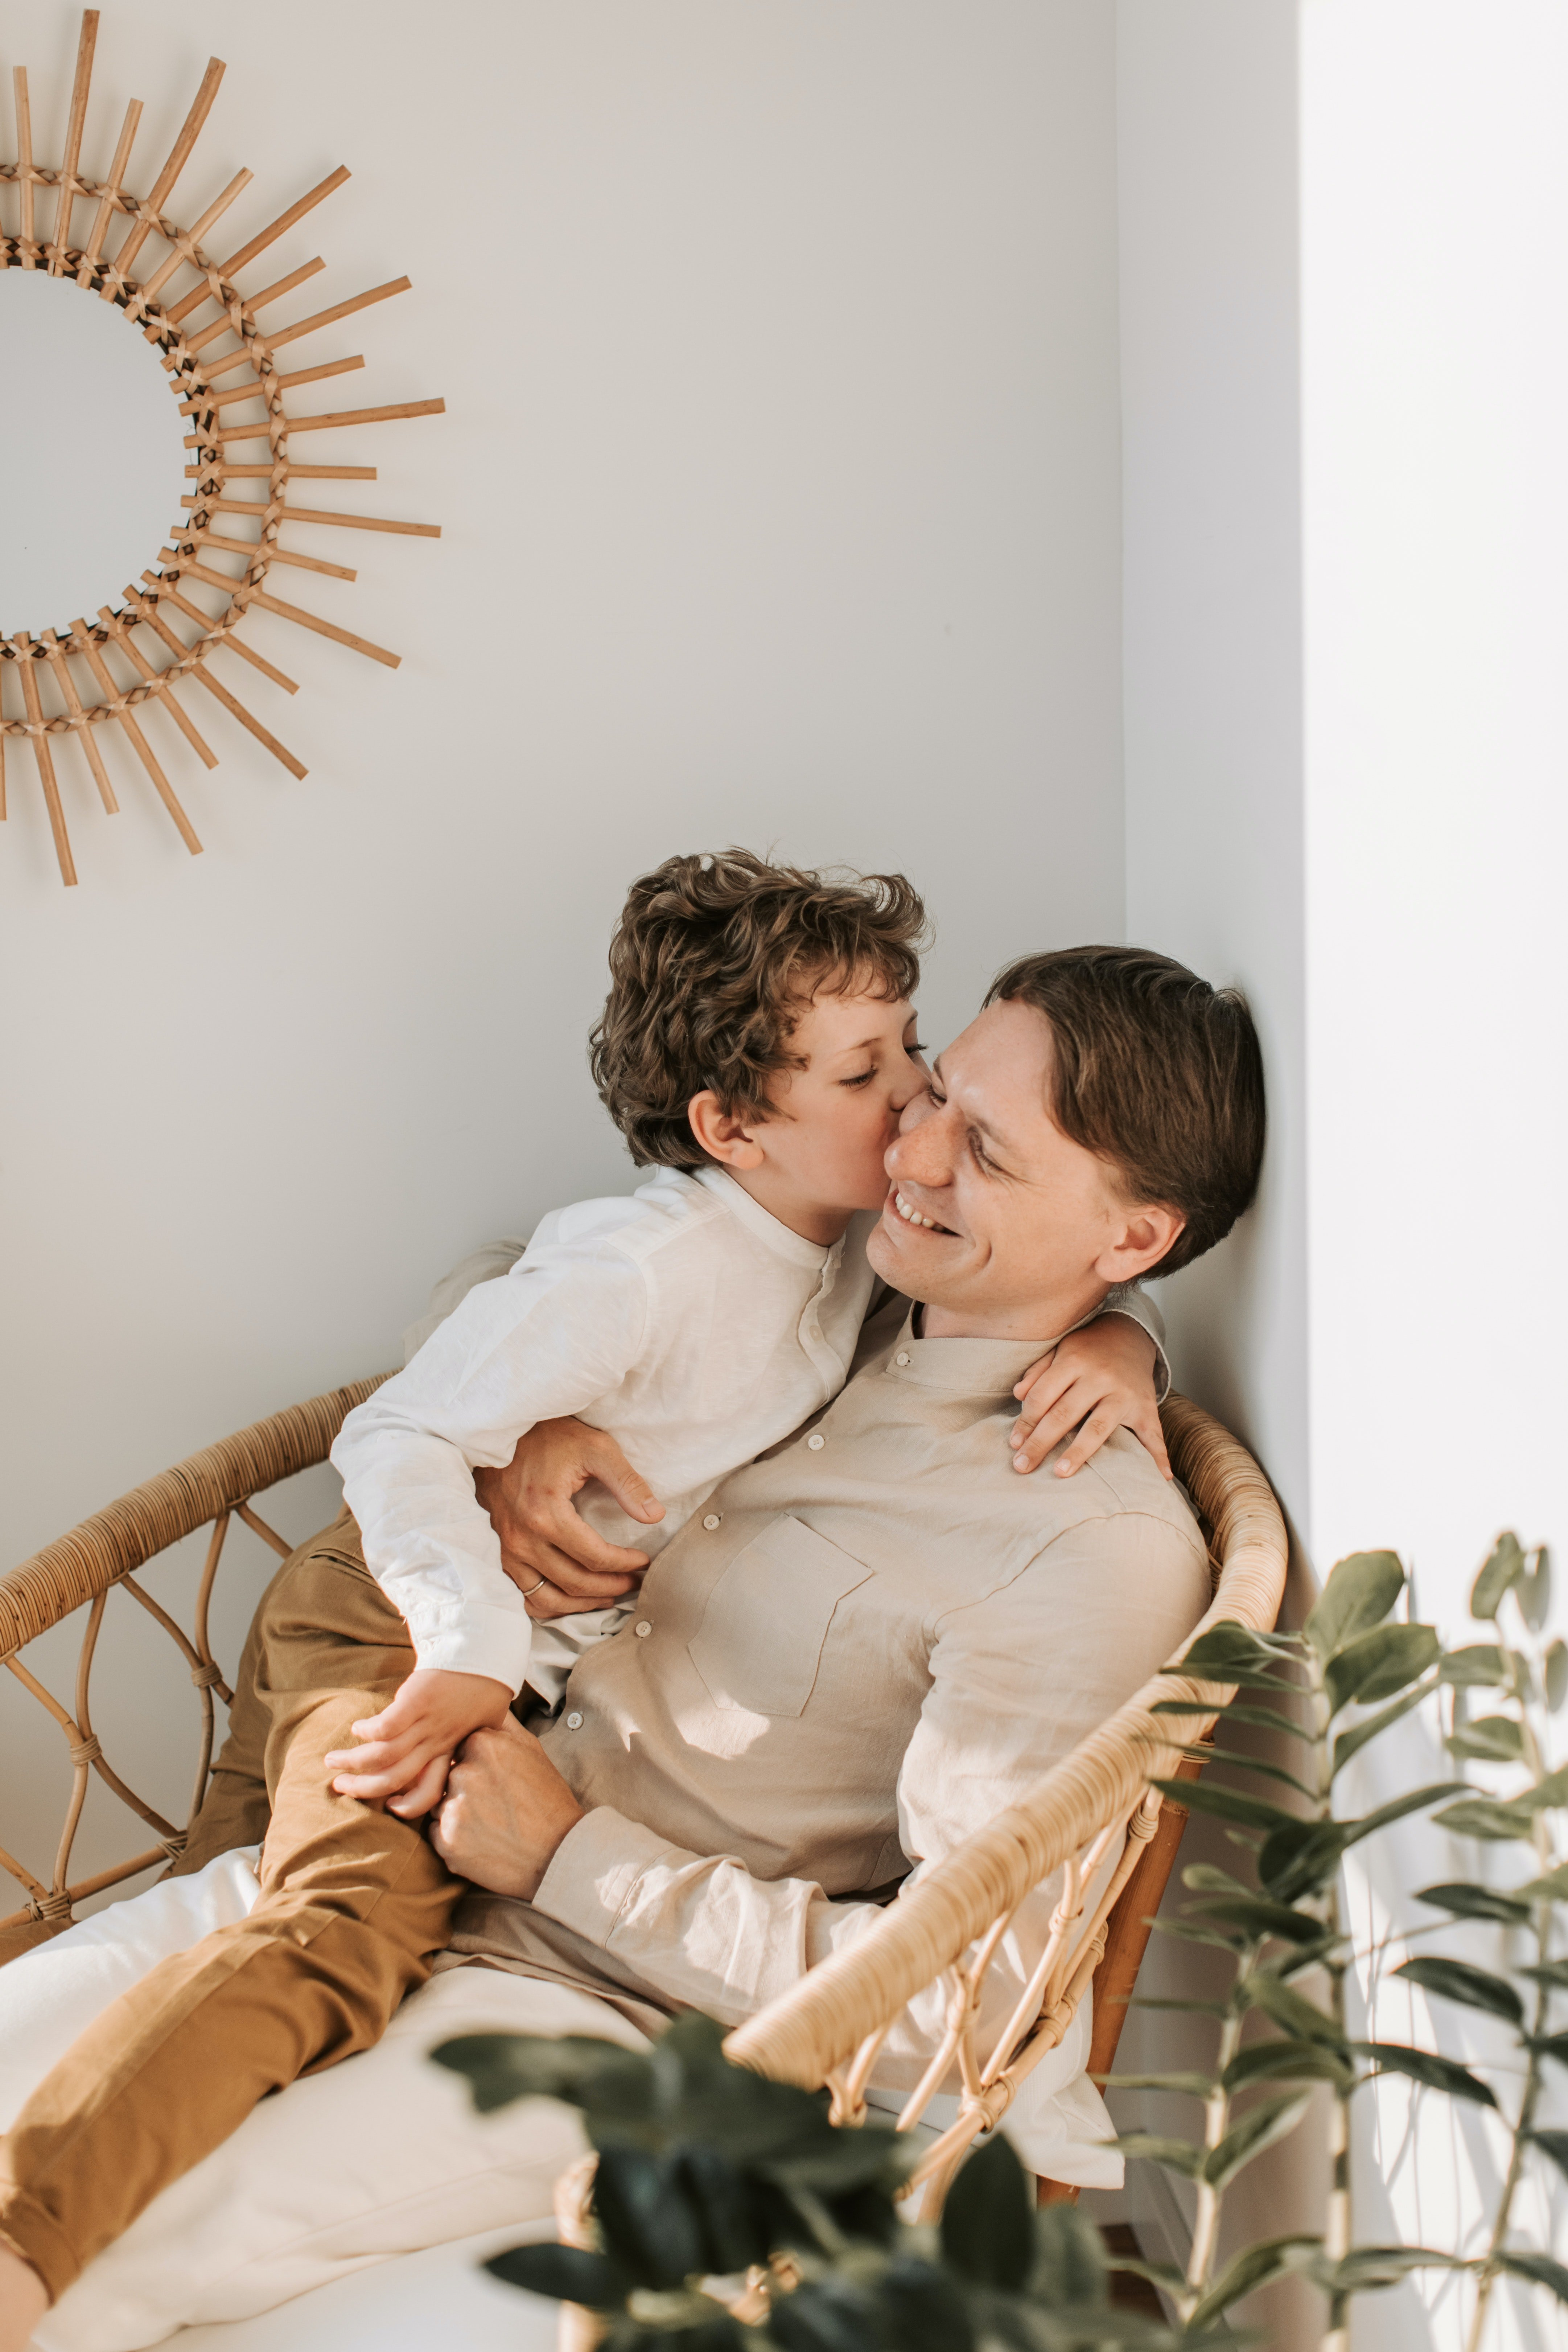 The little boy was happy to have his father back, and loved to ask him questions.   Photo: Pexels/Vlada Karpovich